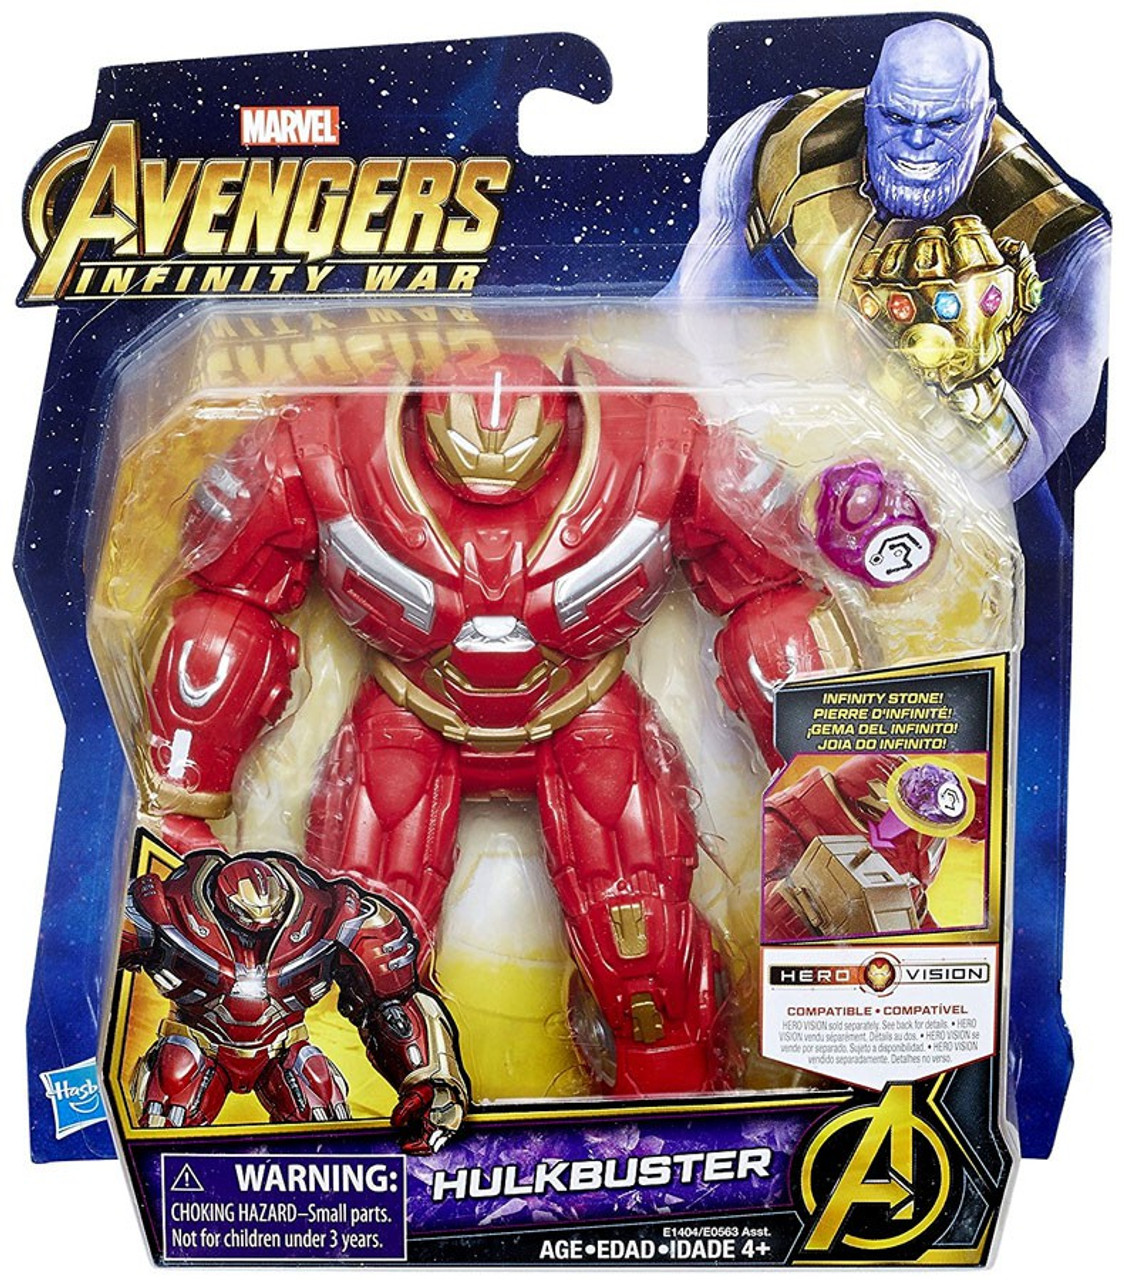 marvel avengers infinity war hulkbuster action figure with stone